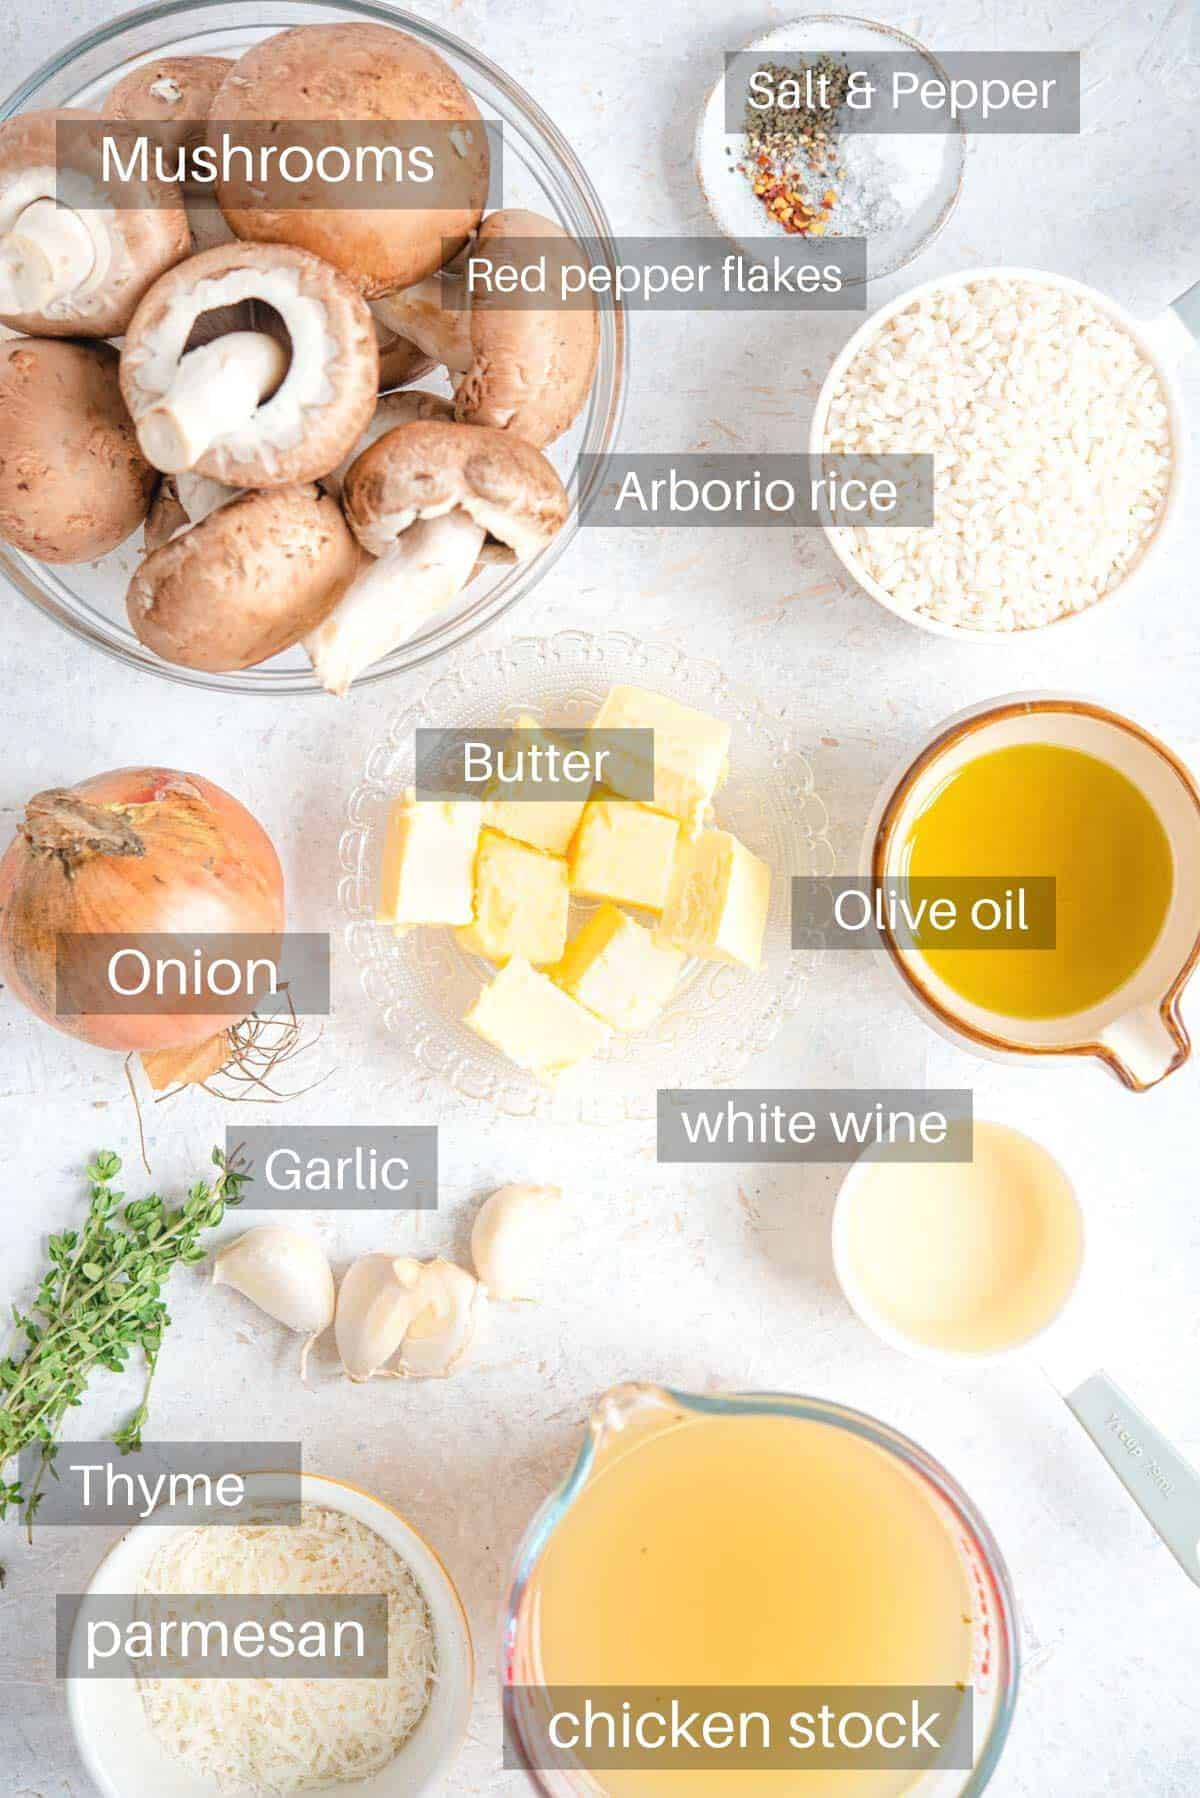 An overhead shot of all the ingredients needed to make mushroom risotto